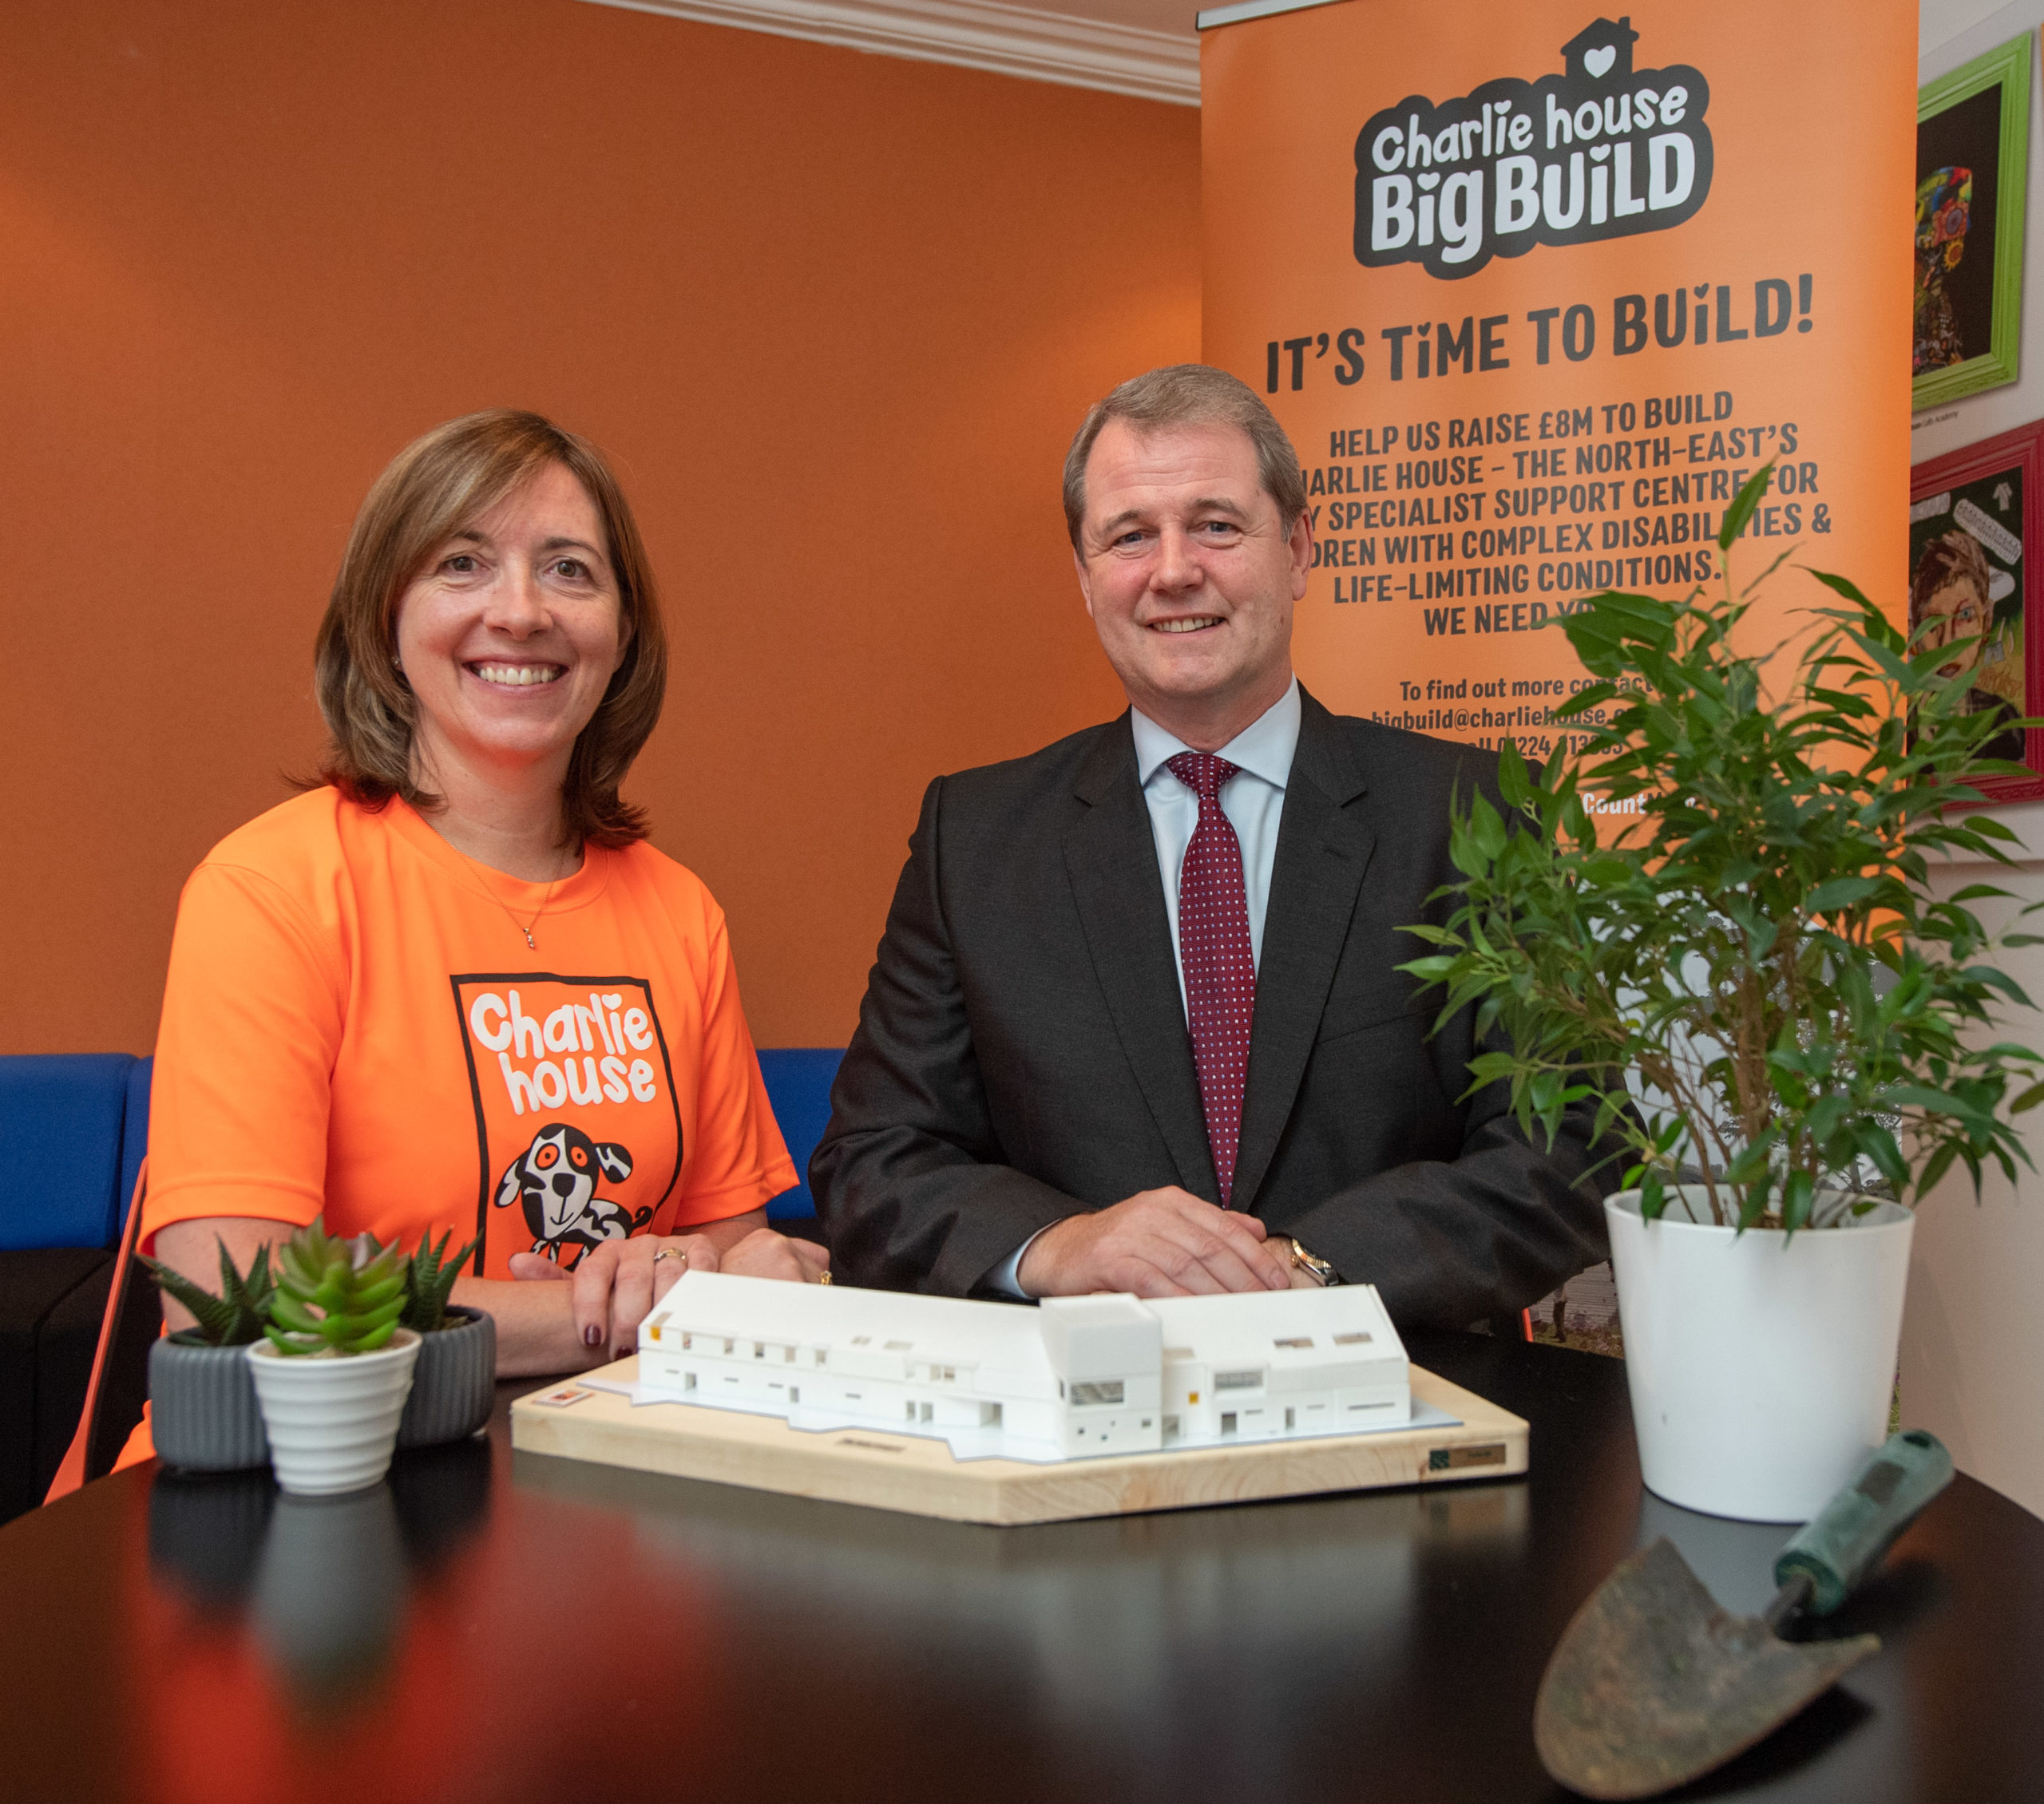 Susan Crighton and Donald Taylor raising funds for Charlie House in the Big Build campaign